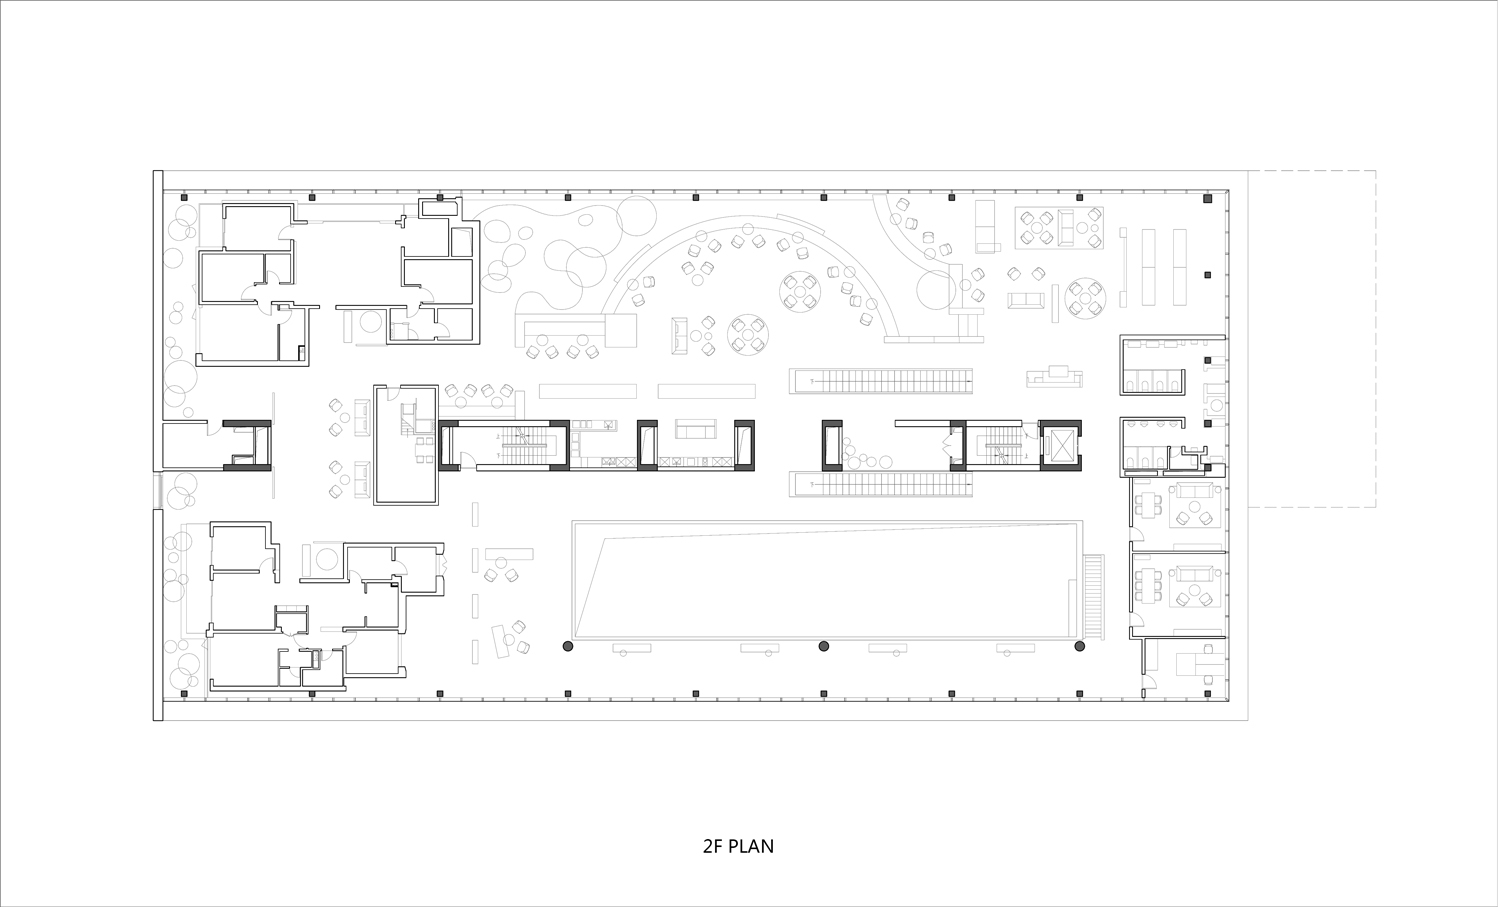 SECOND FLOOR PLAN gad}